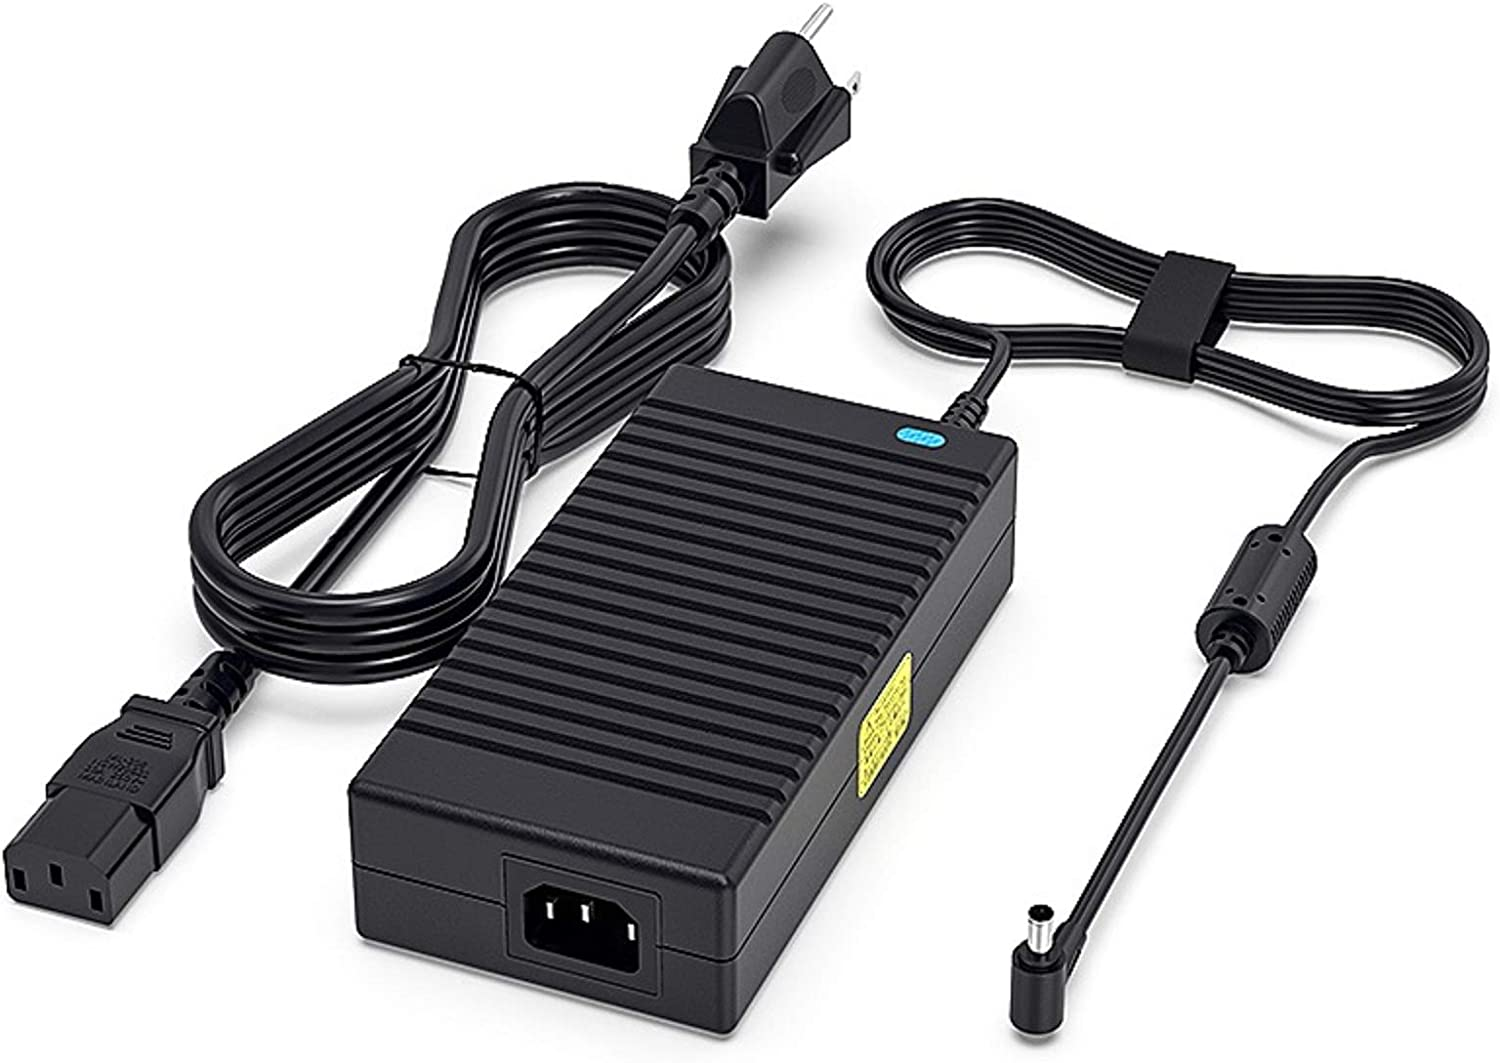 Delippo 180W 20V San Jose Mall 9A Adapter for G15 Gaming G14 A401 ROG Zephyrus Shipping included